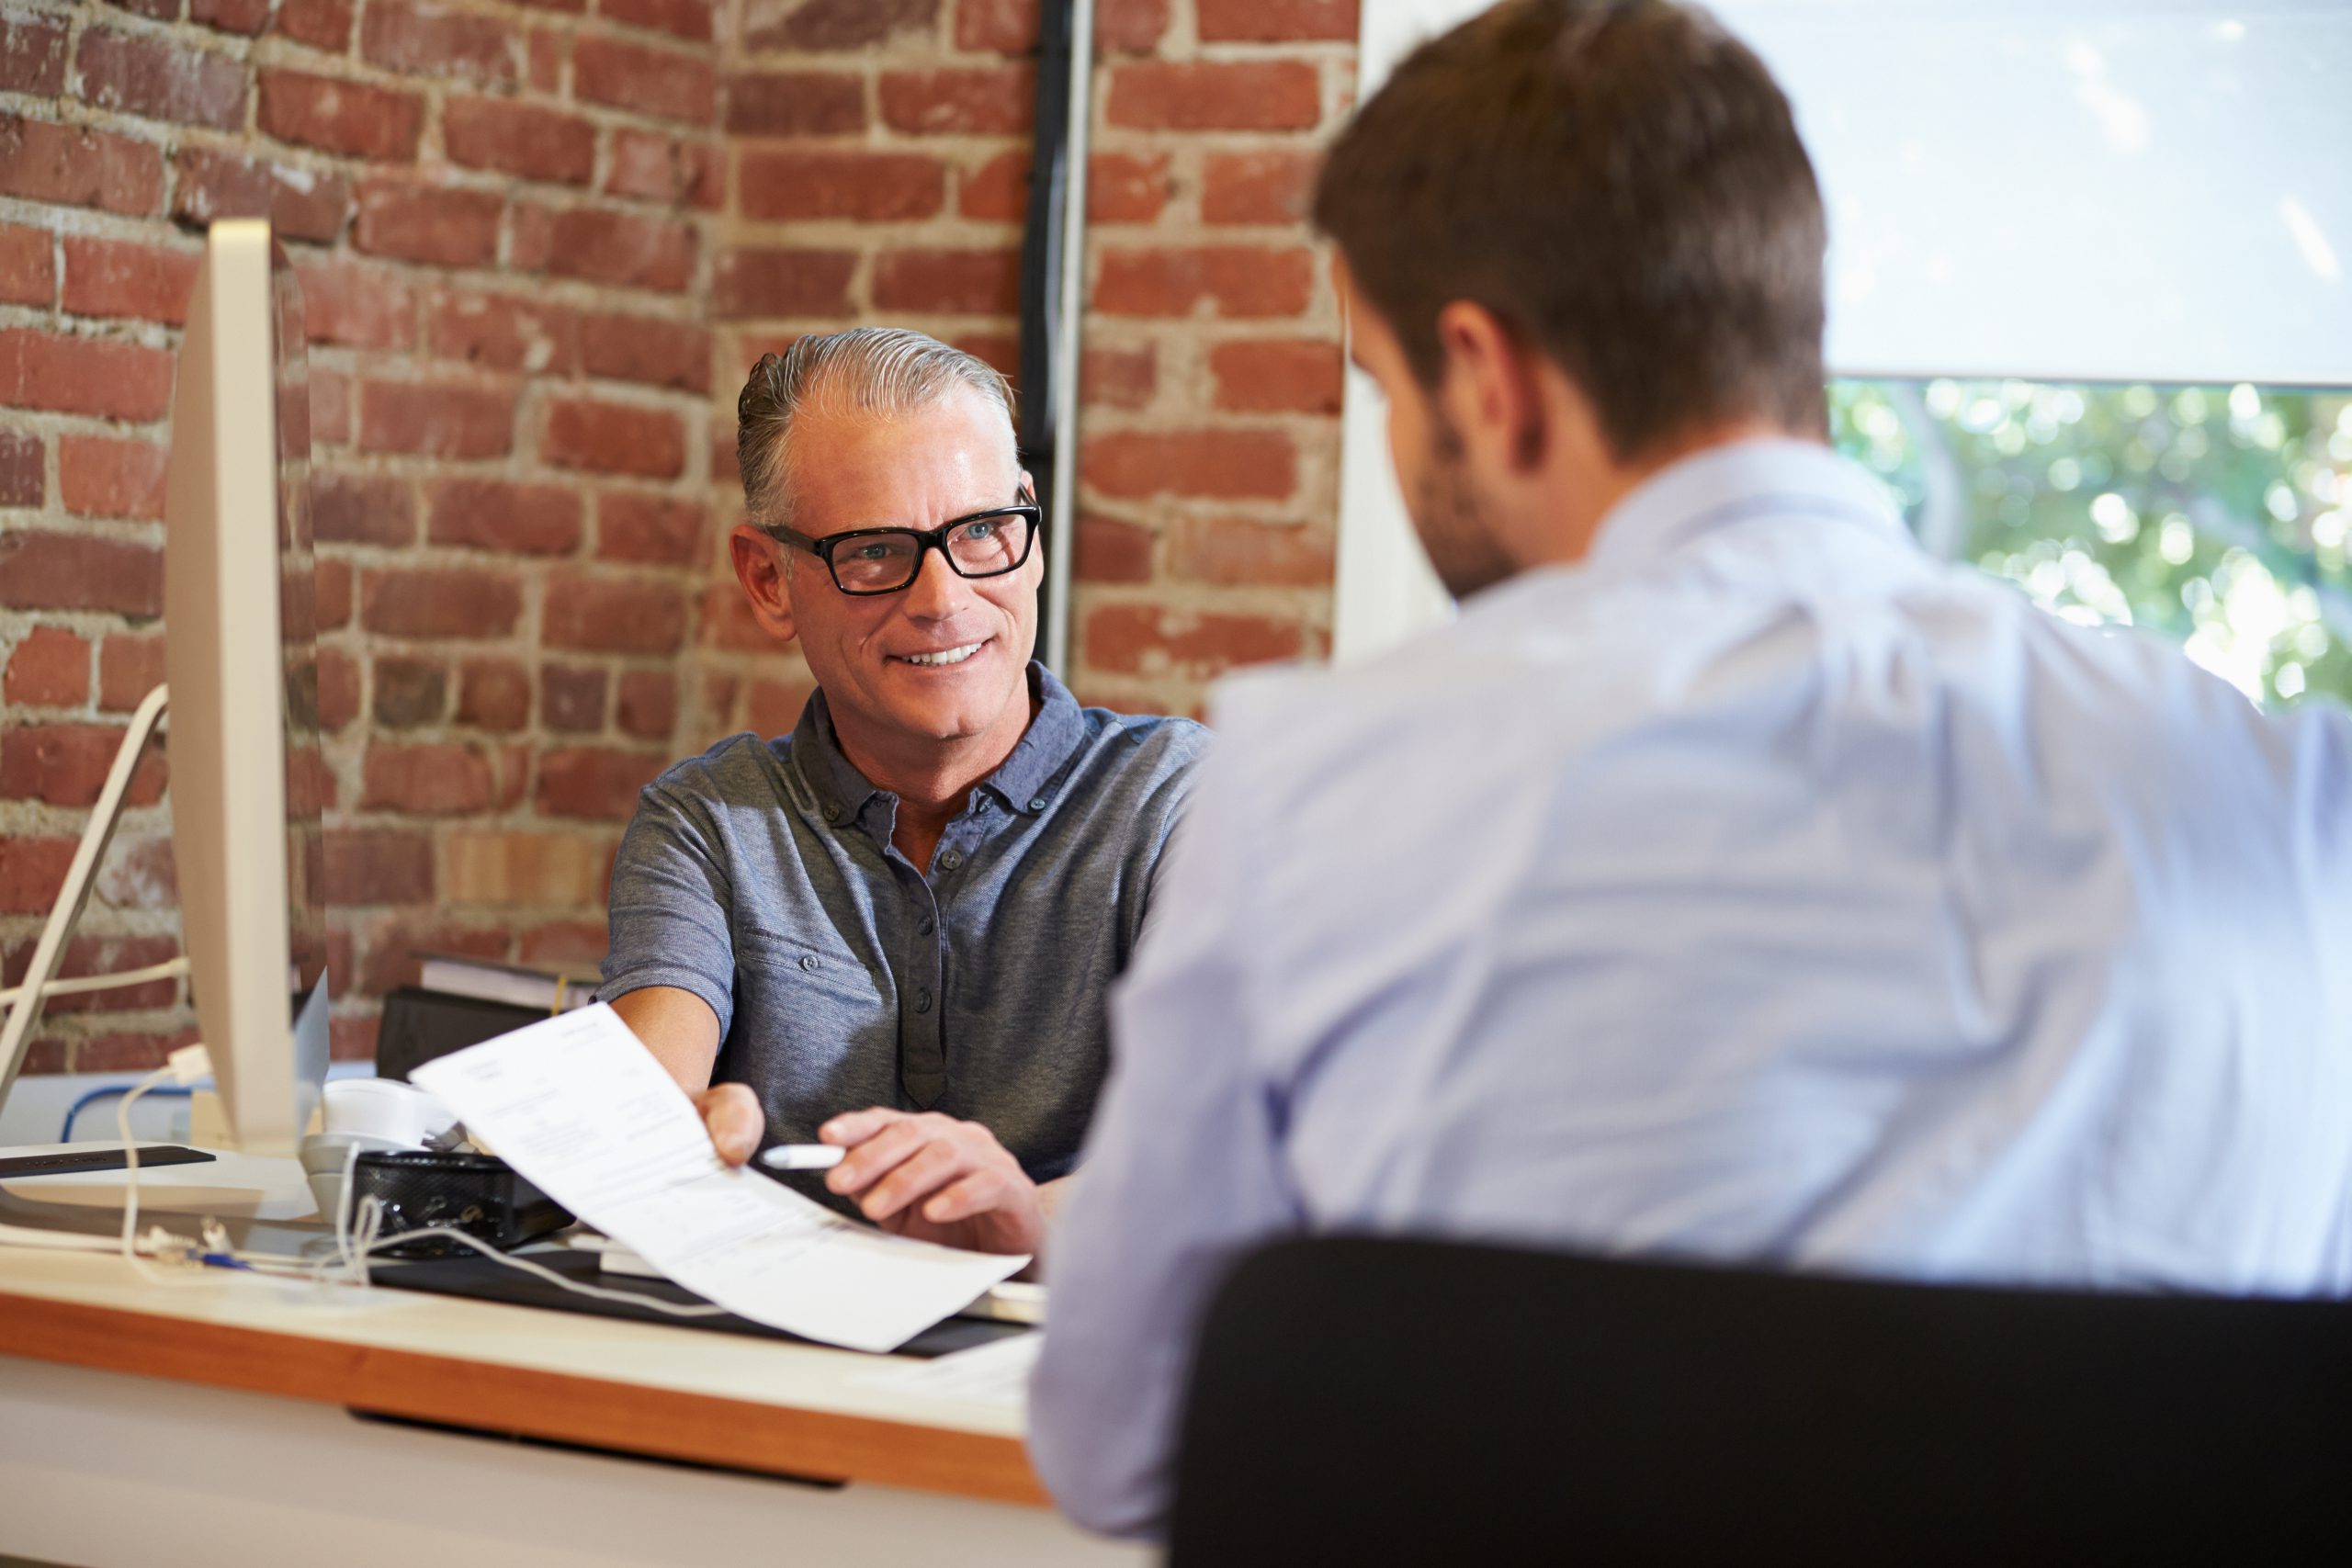 So, You're Nailing the Interview. Finish Strong by Asking the Recruiter These 4 Questions